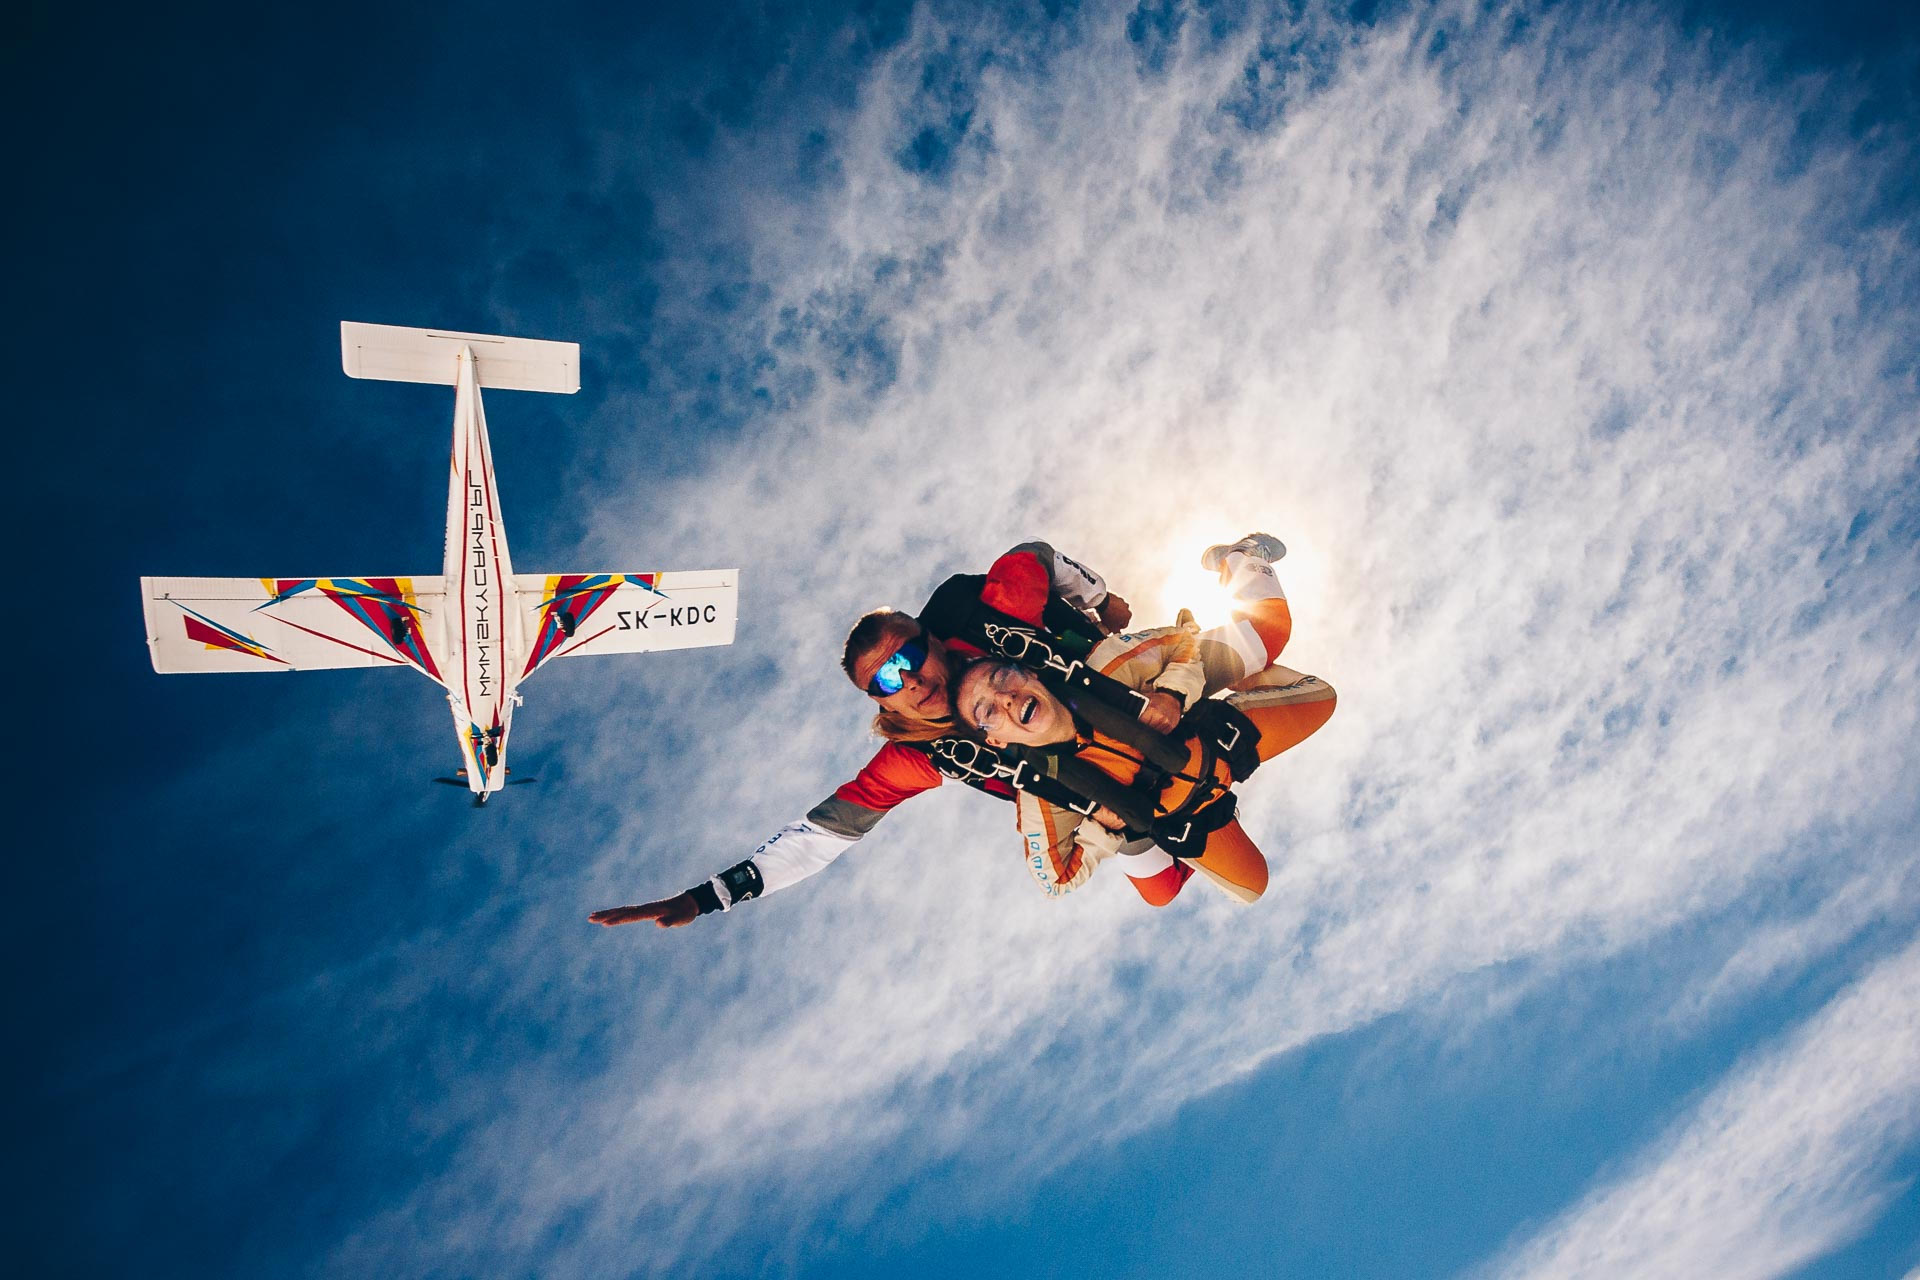 A Skydiving Adrenaline Pumping Adventure at its Absolute Best!